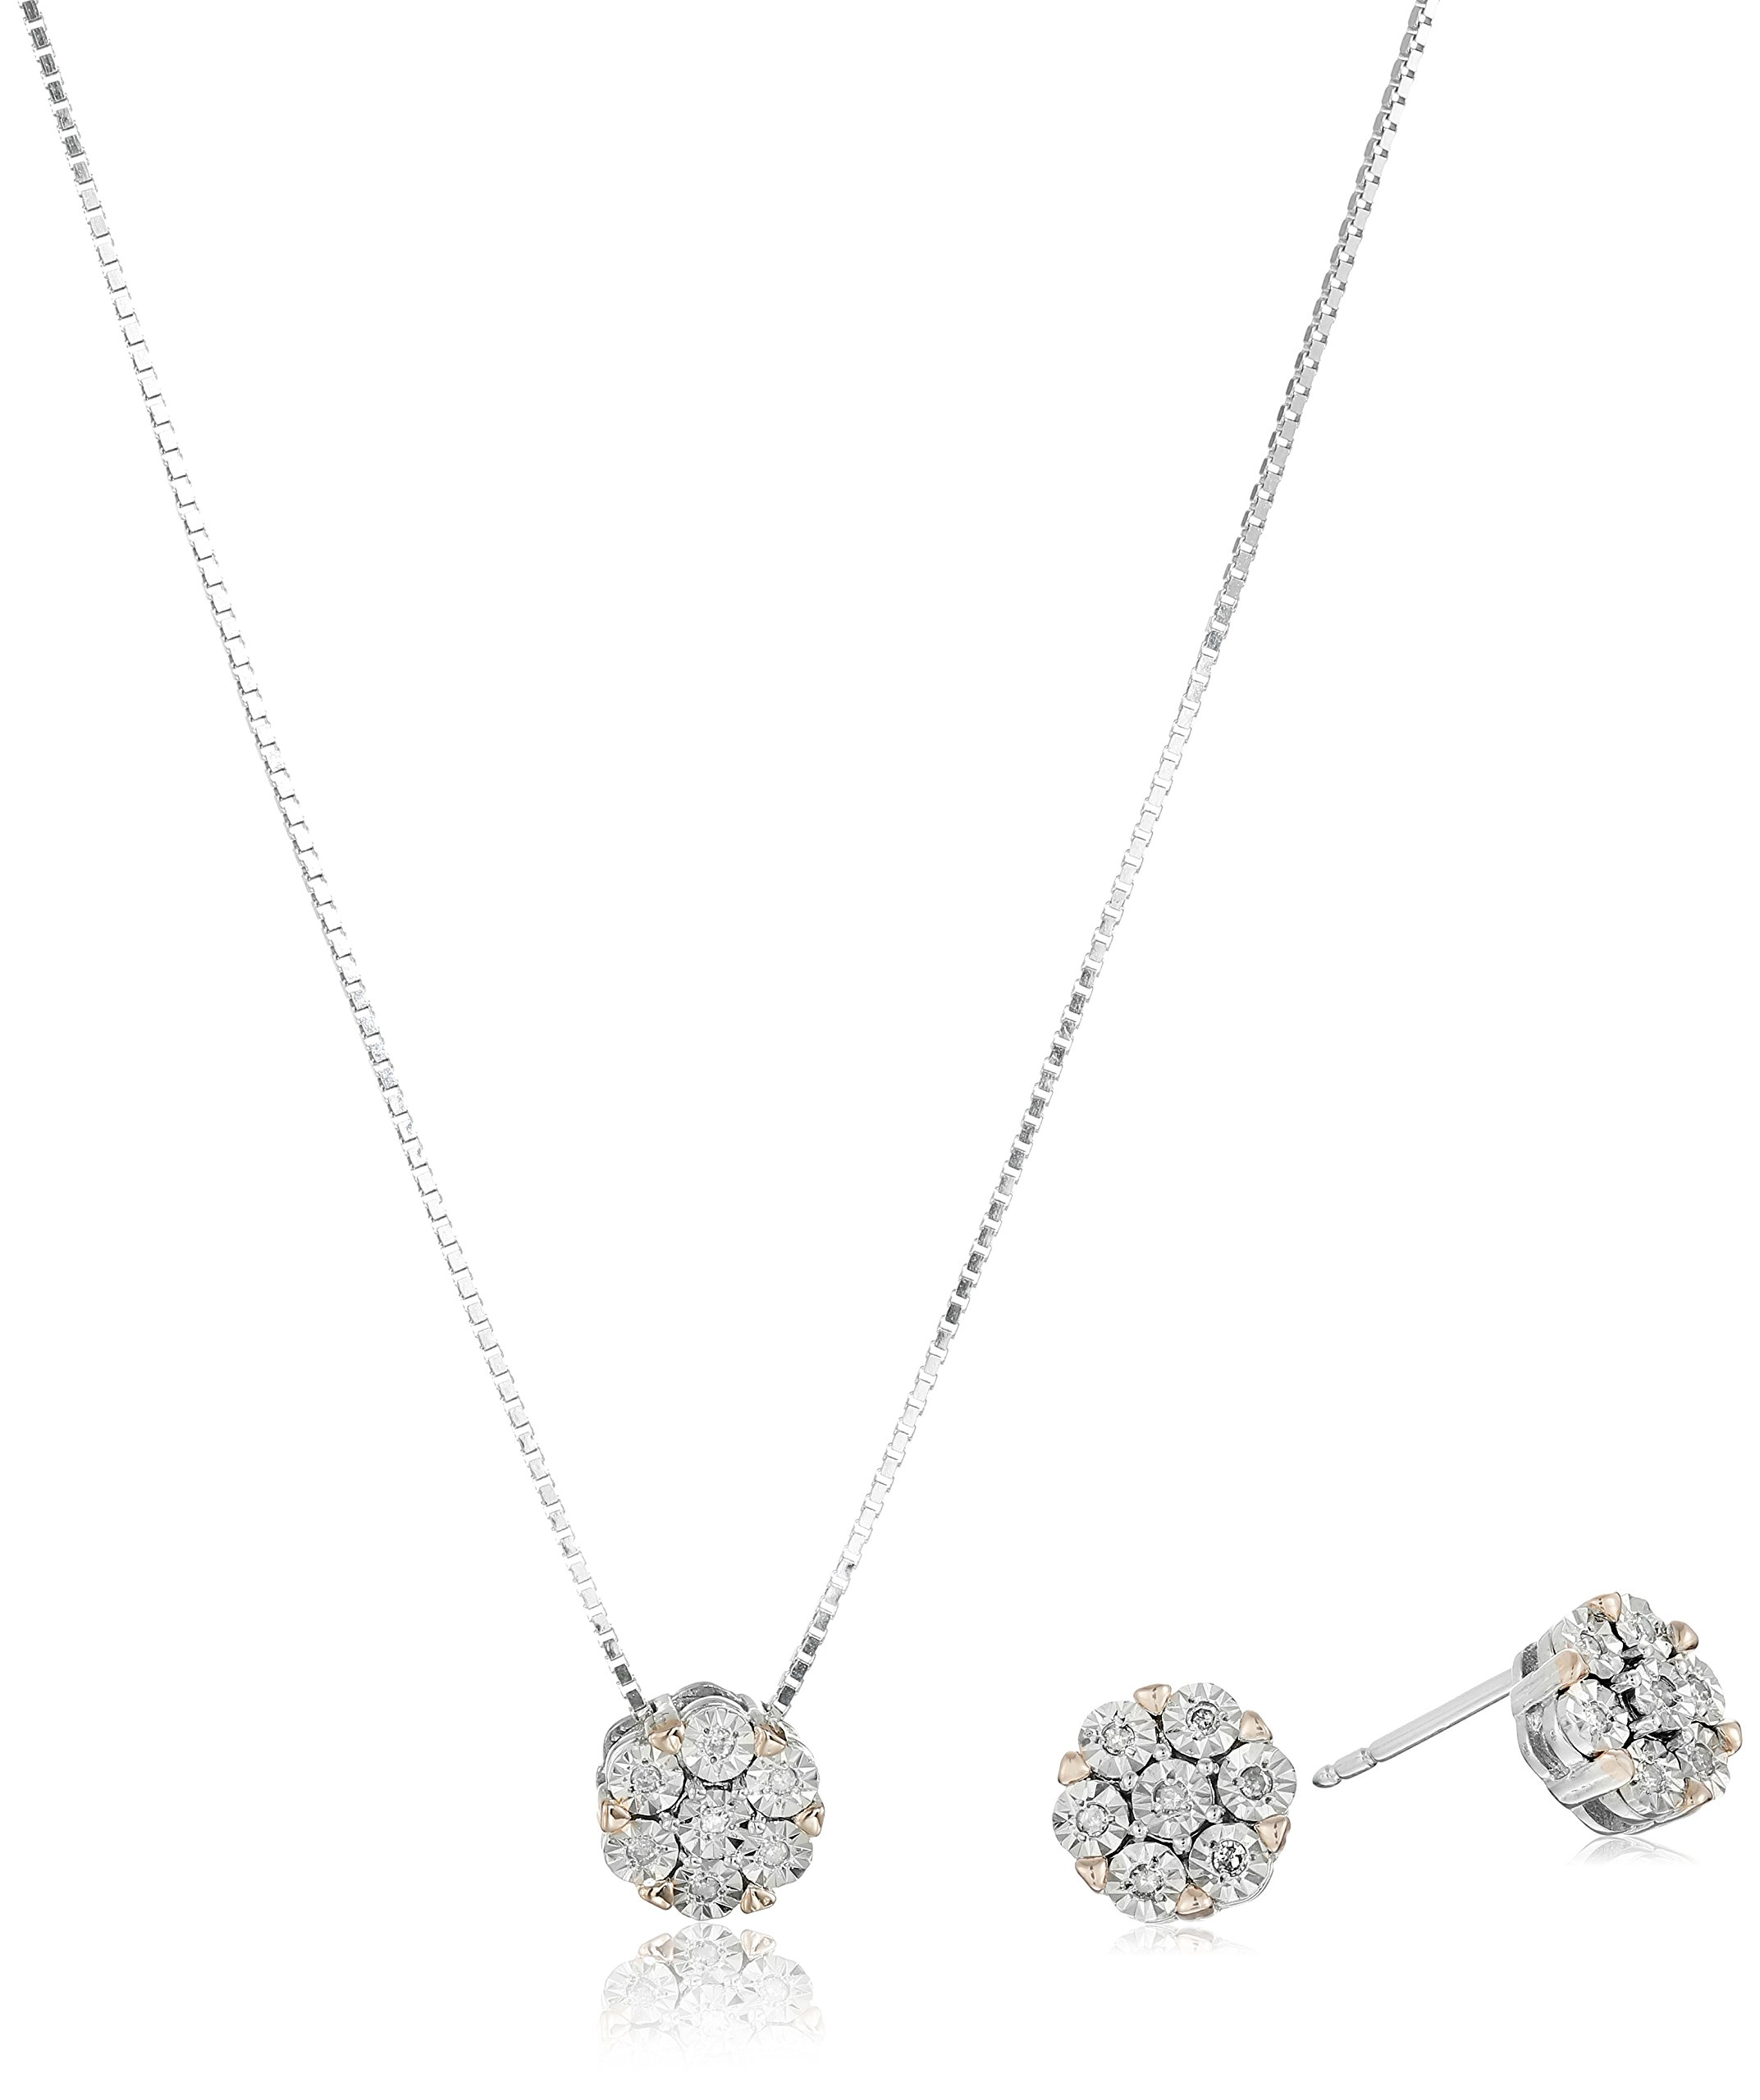 Sterling Silver with 18K Rose Gold Plated Prongs Diamond Cluster Earrings and Pendant Necklace Jewelry Set (1/10 cttw, I-J Color, I2-I3 Clarity)